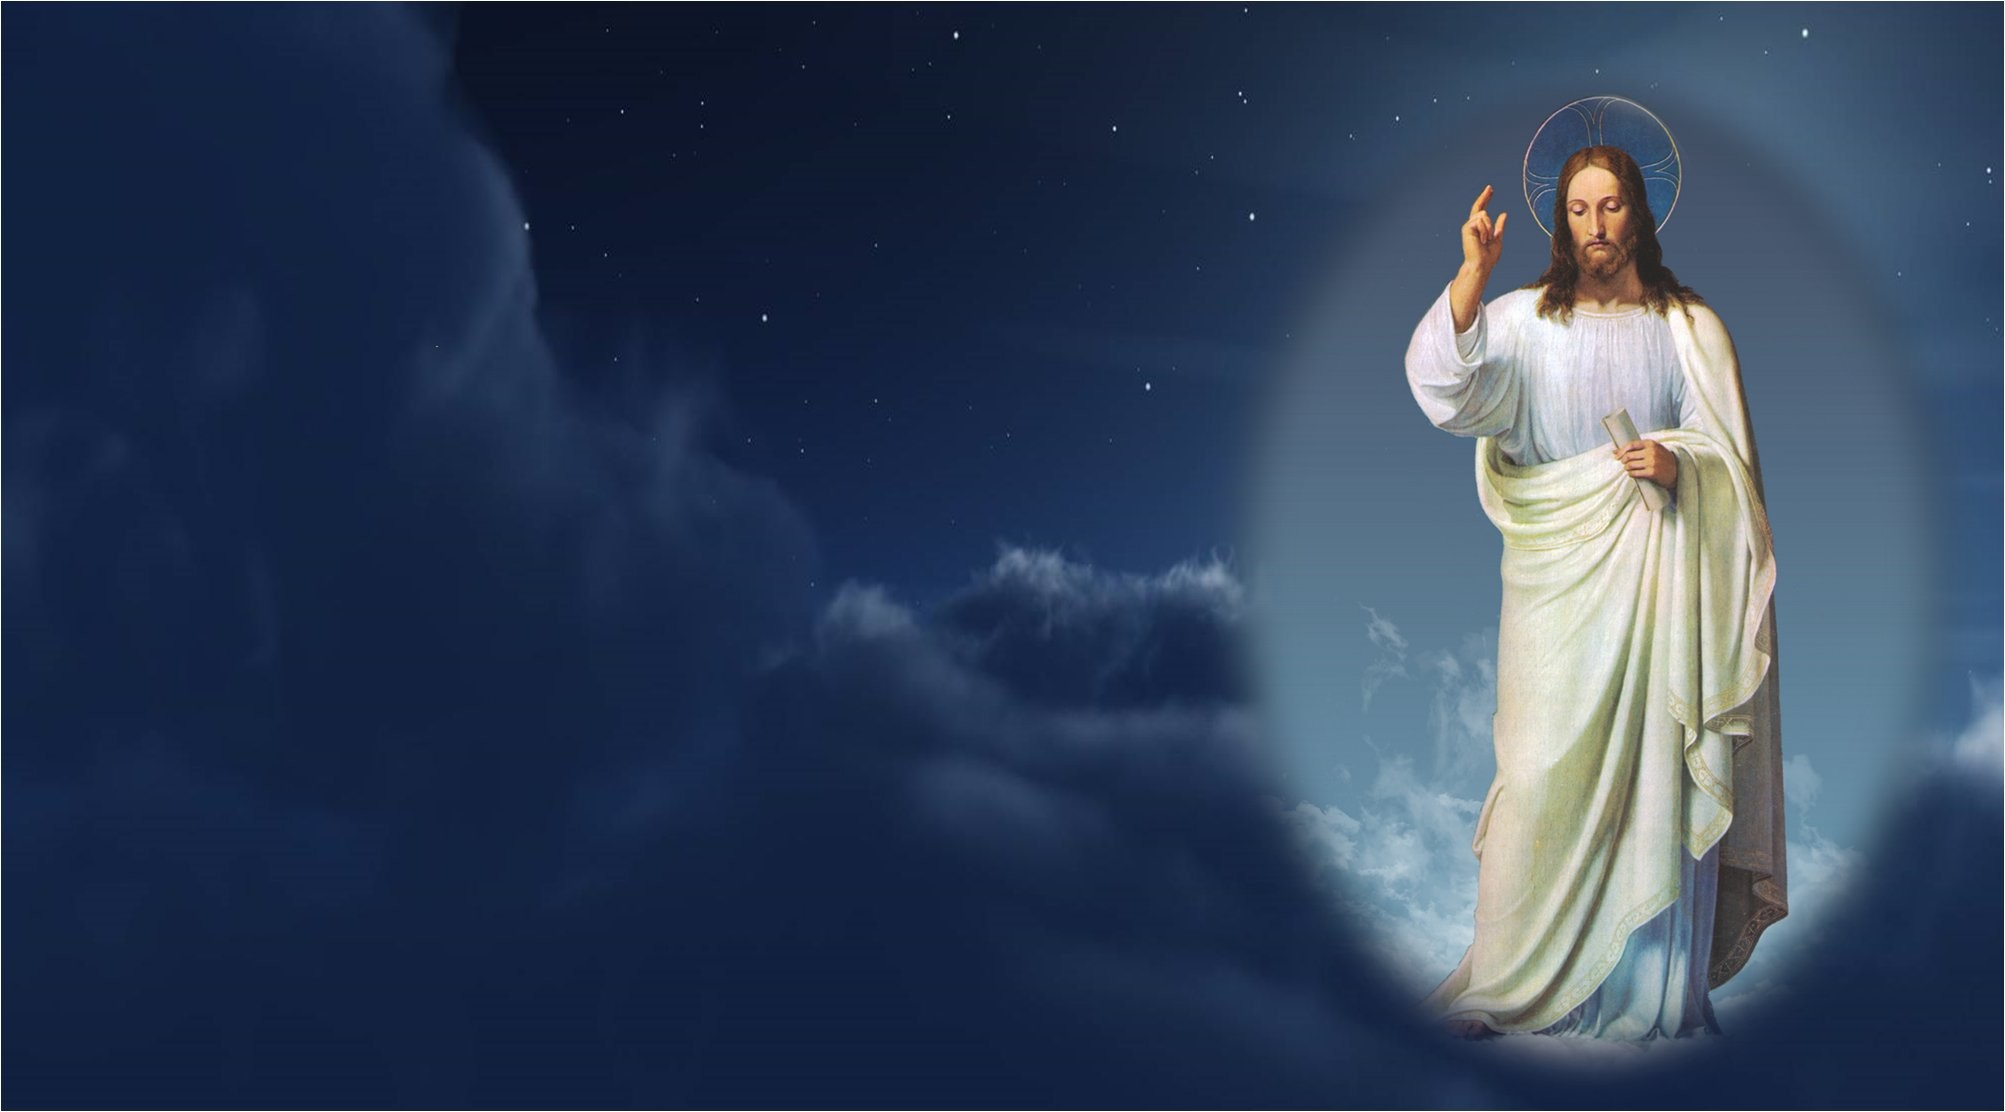 Christ Hd Wallpapers For Mobile